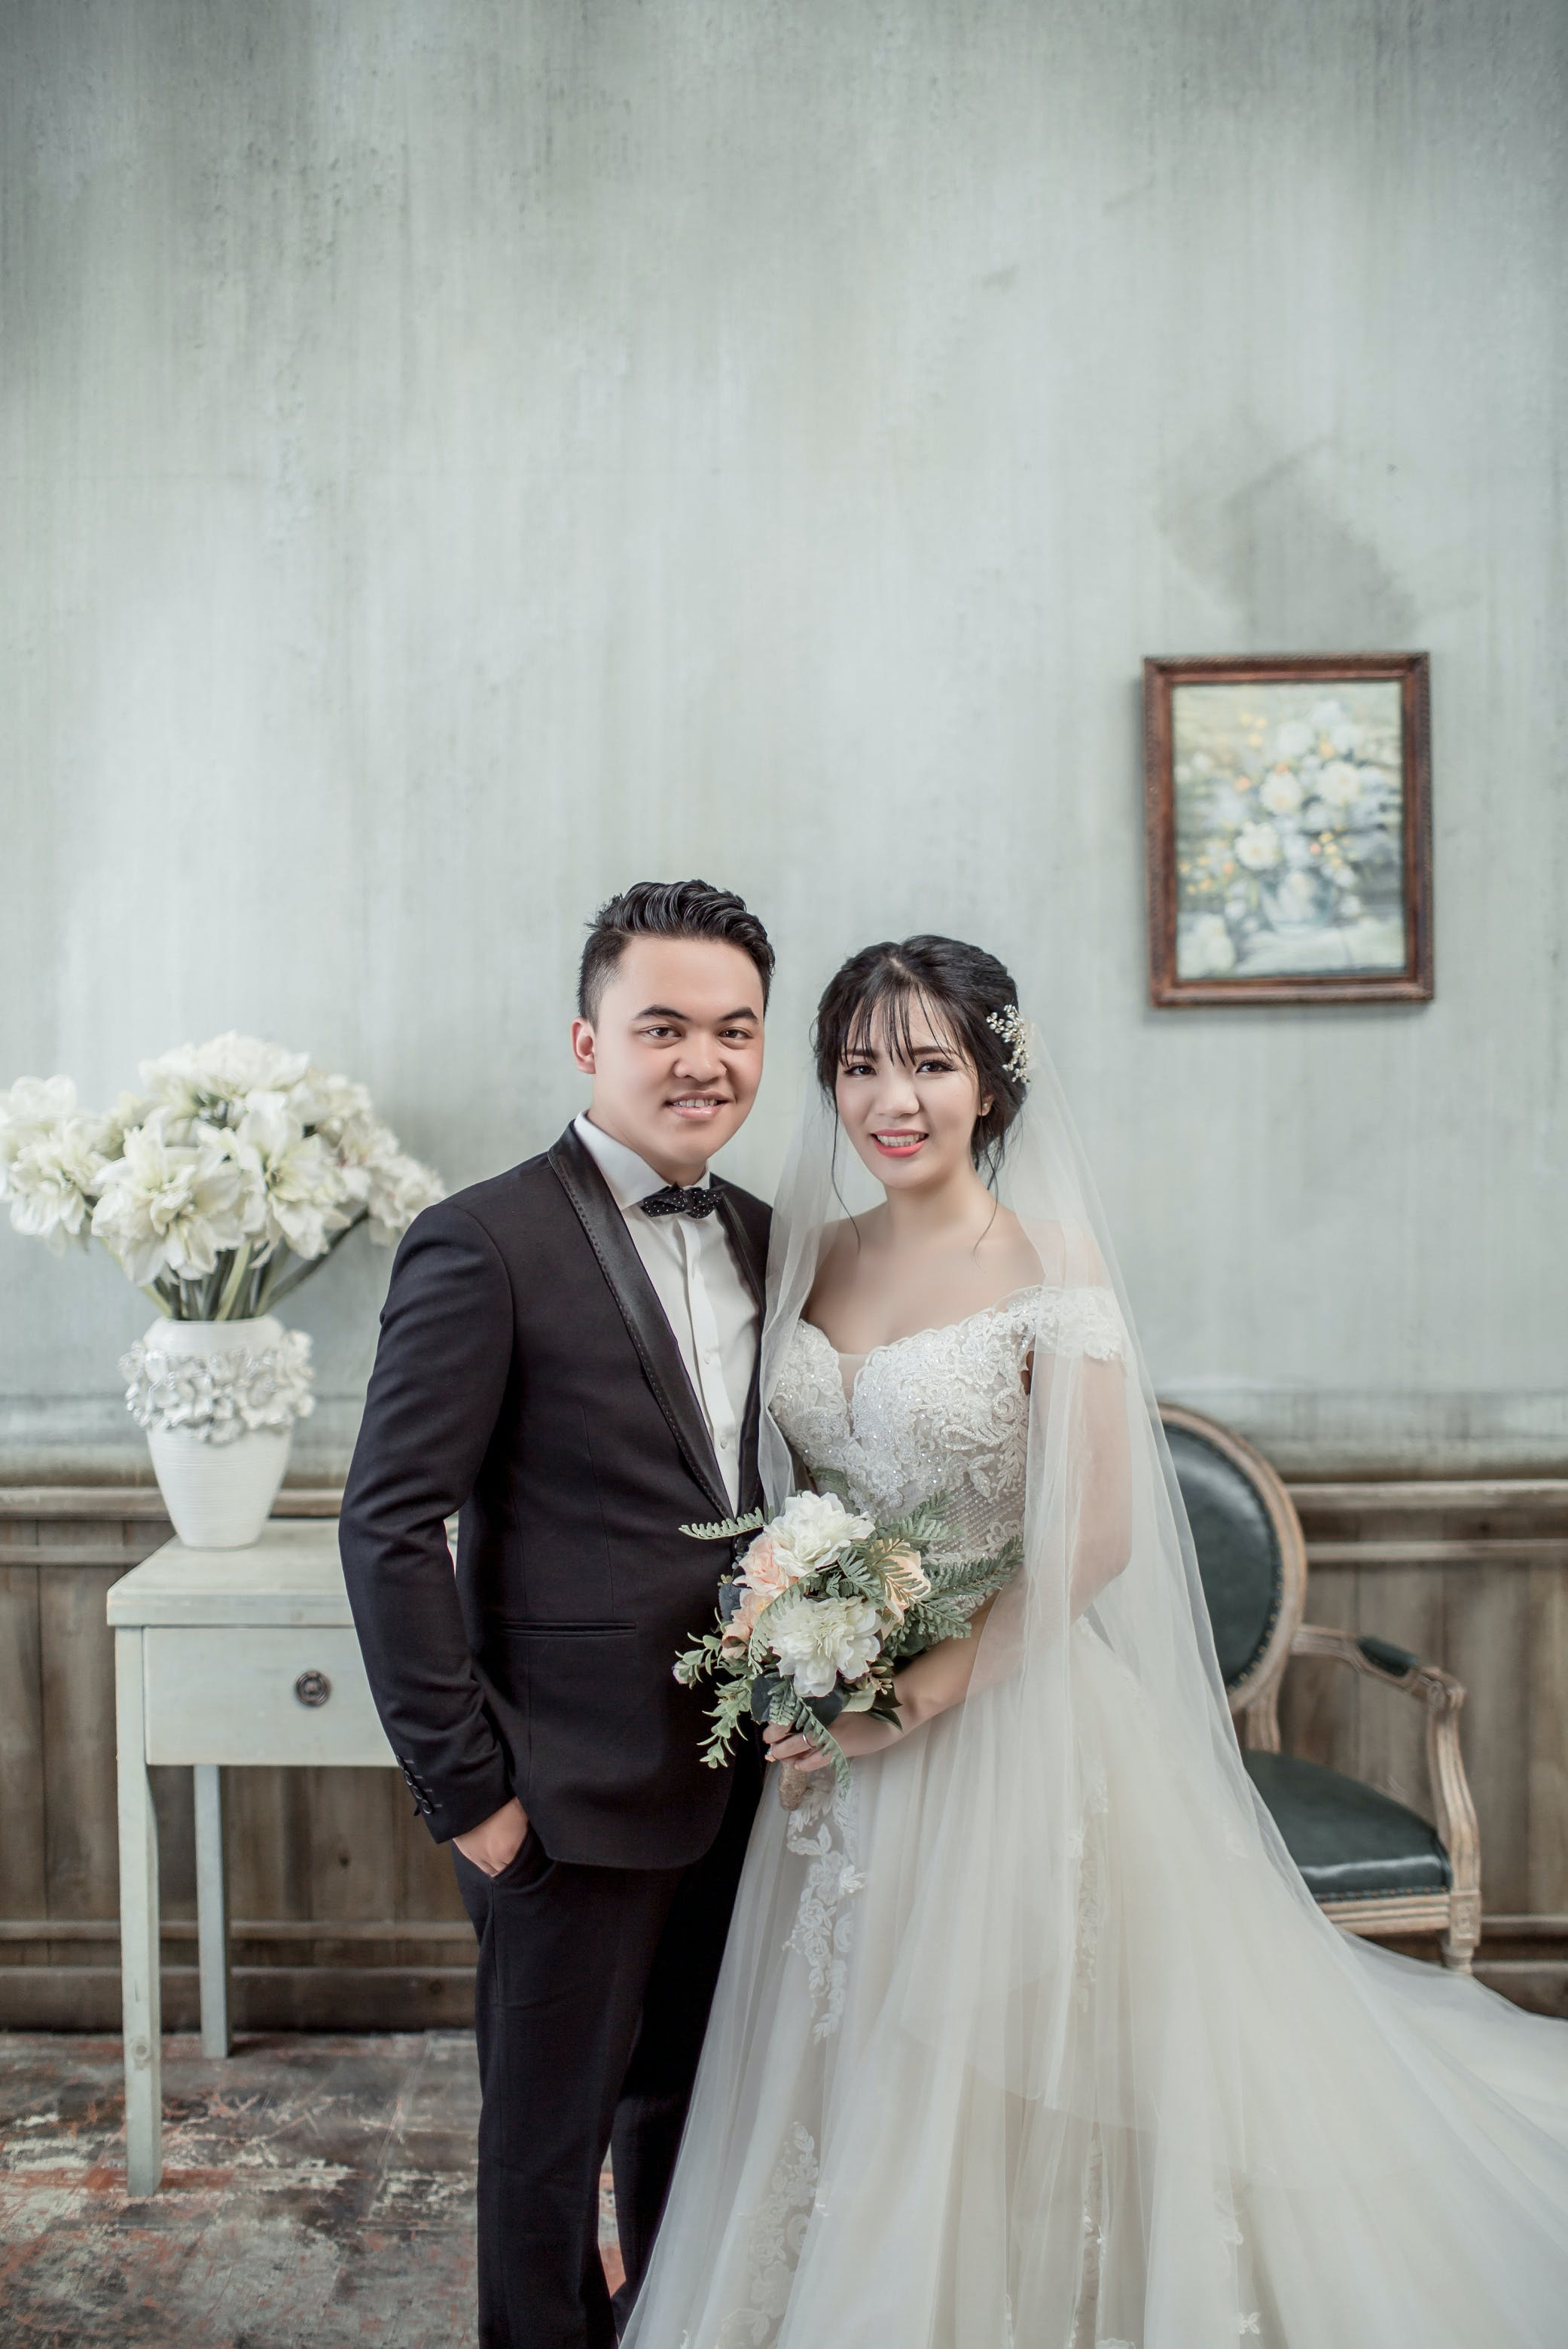 Man and Woman Taking Wedding Photo Inside Gray Concrete House With Wall Arts and Flowers on Vase